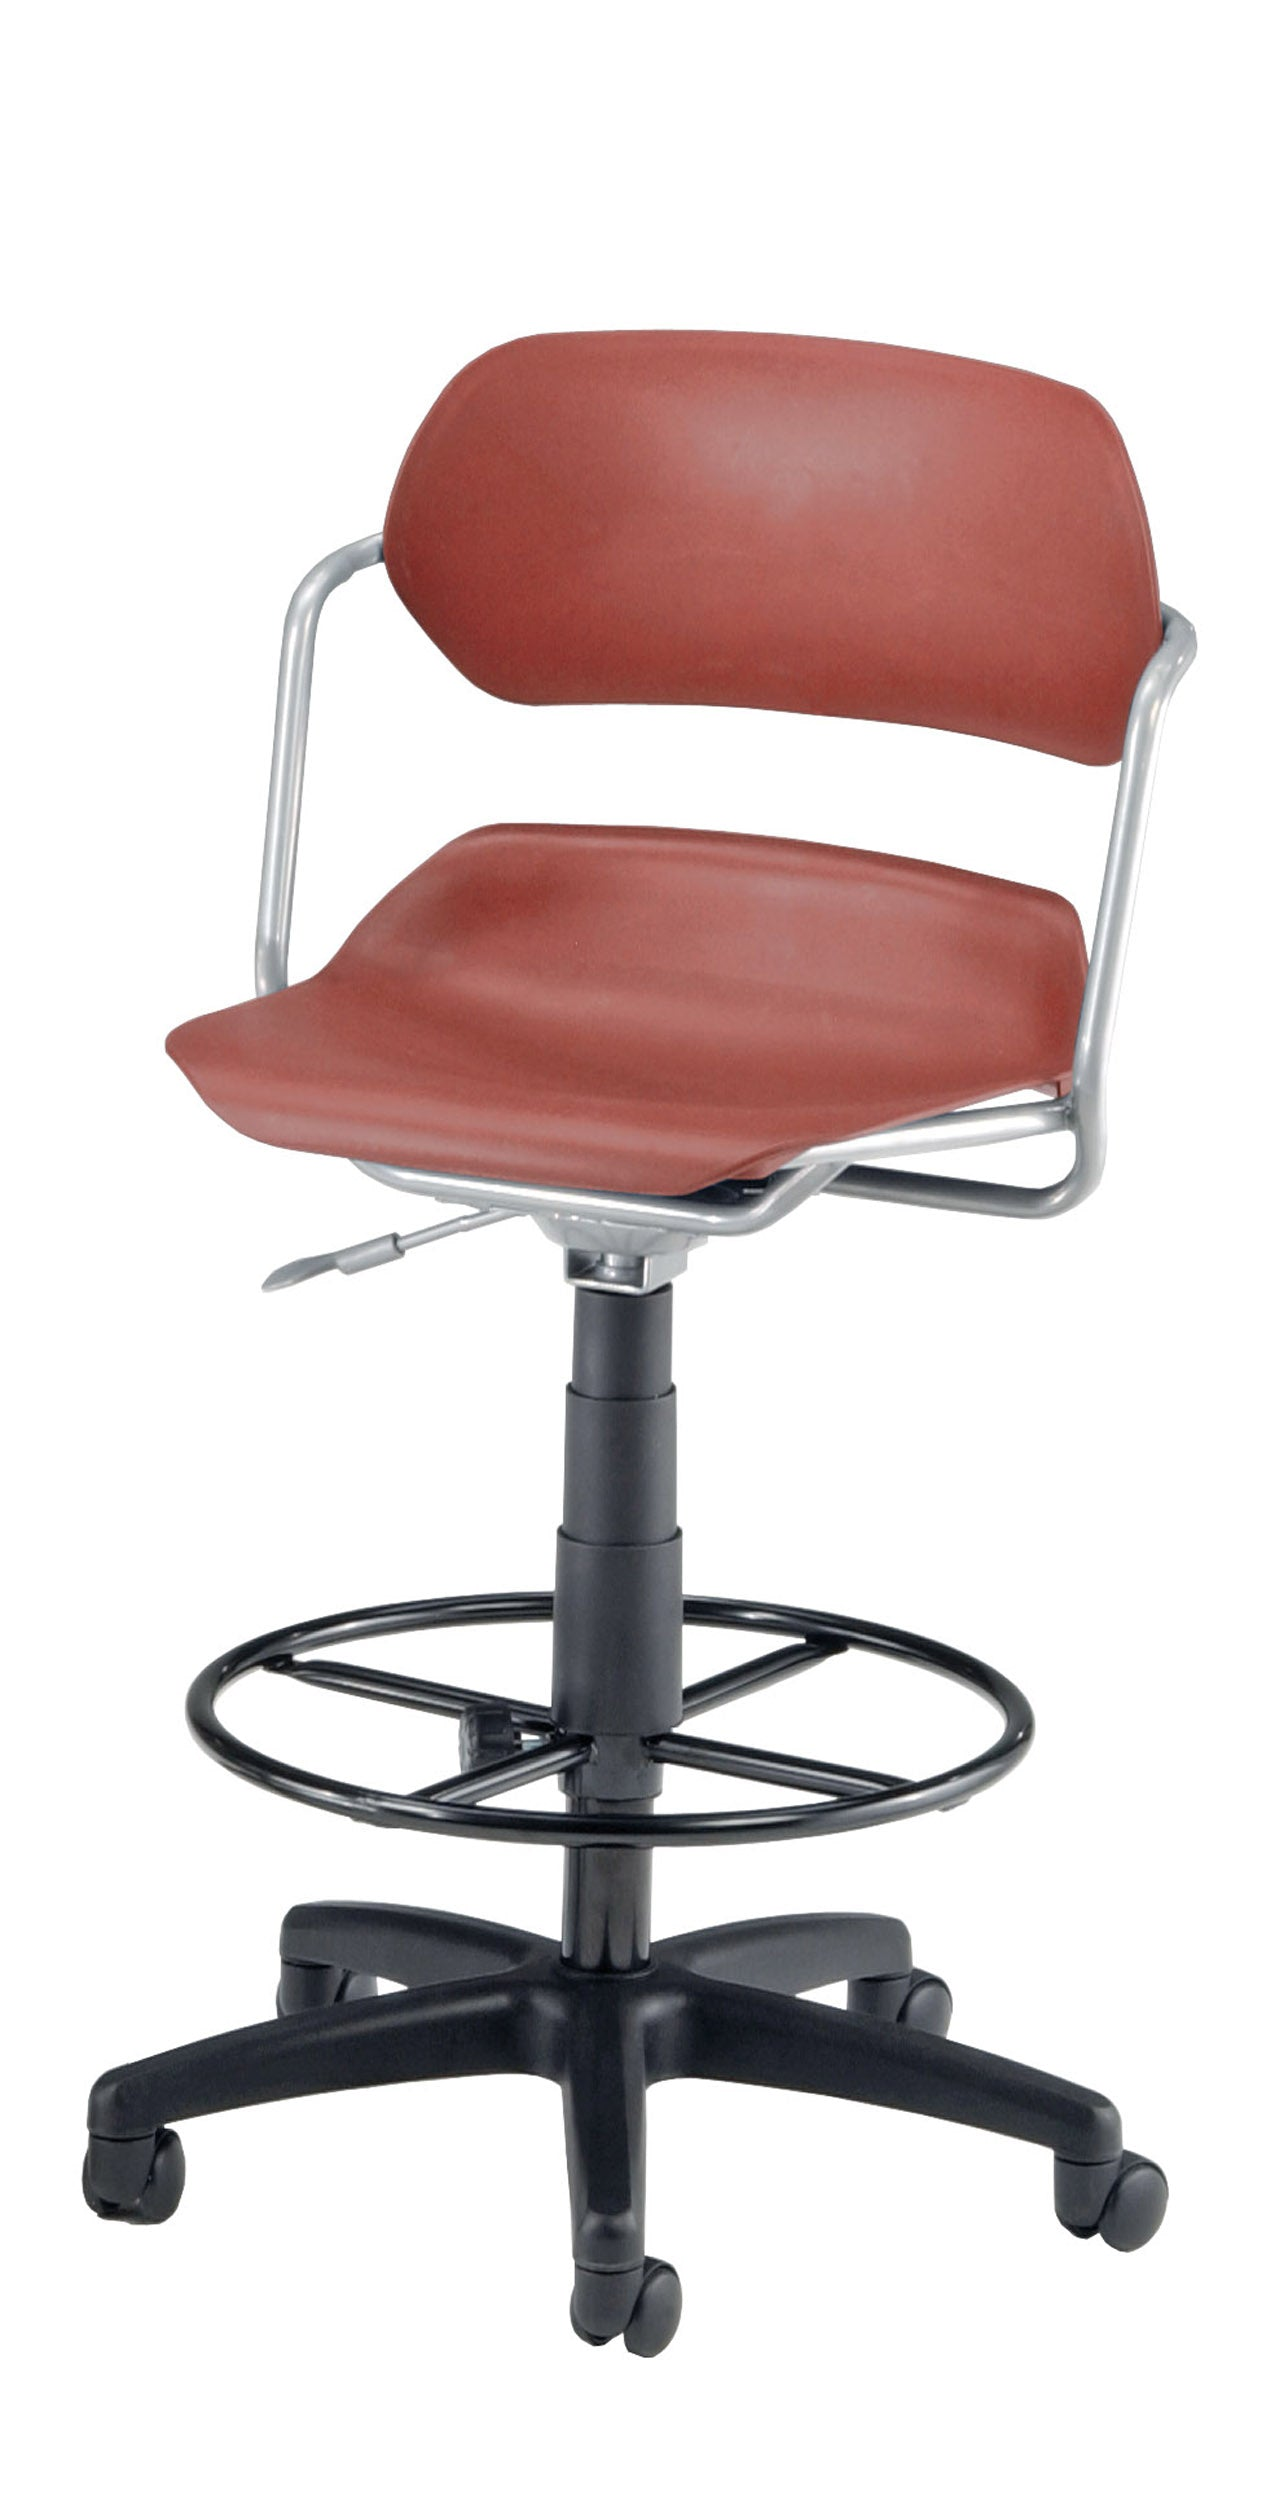 Model 200-DK Martisa Series Plastic Swivel Task Drafting Kit Arm Chair